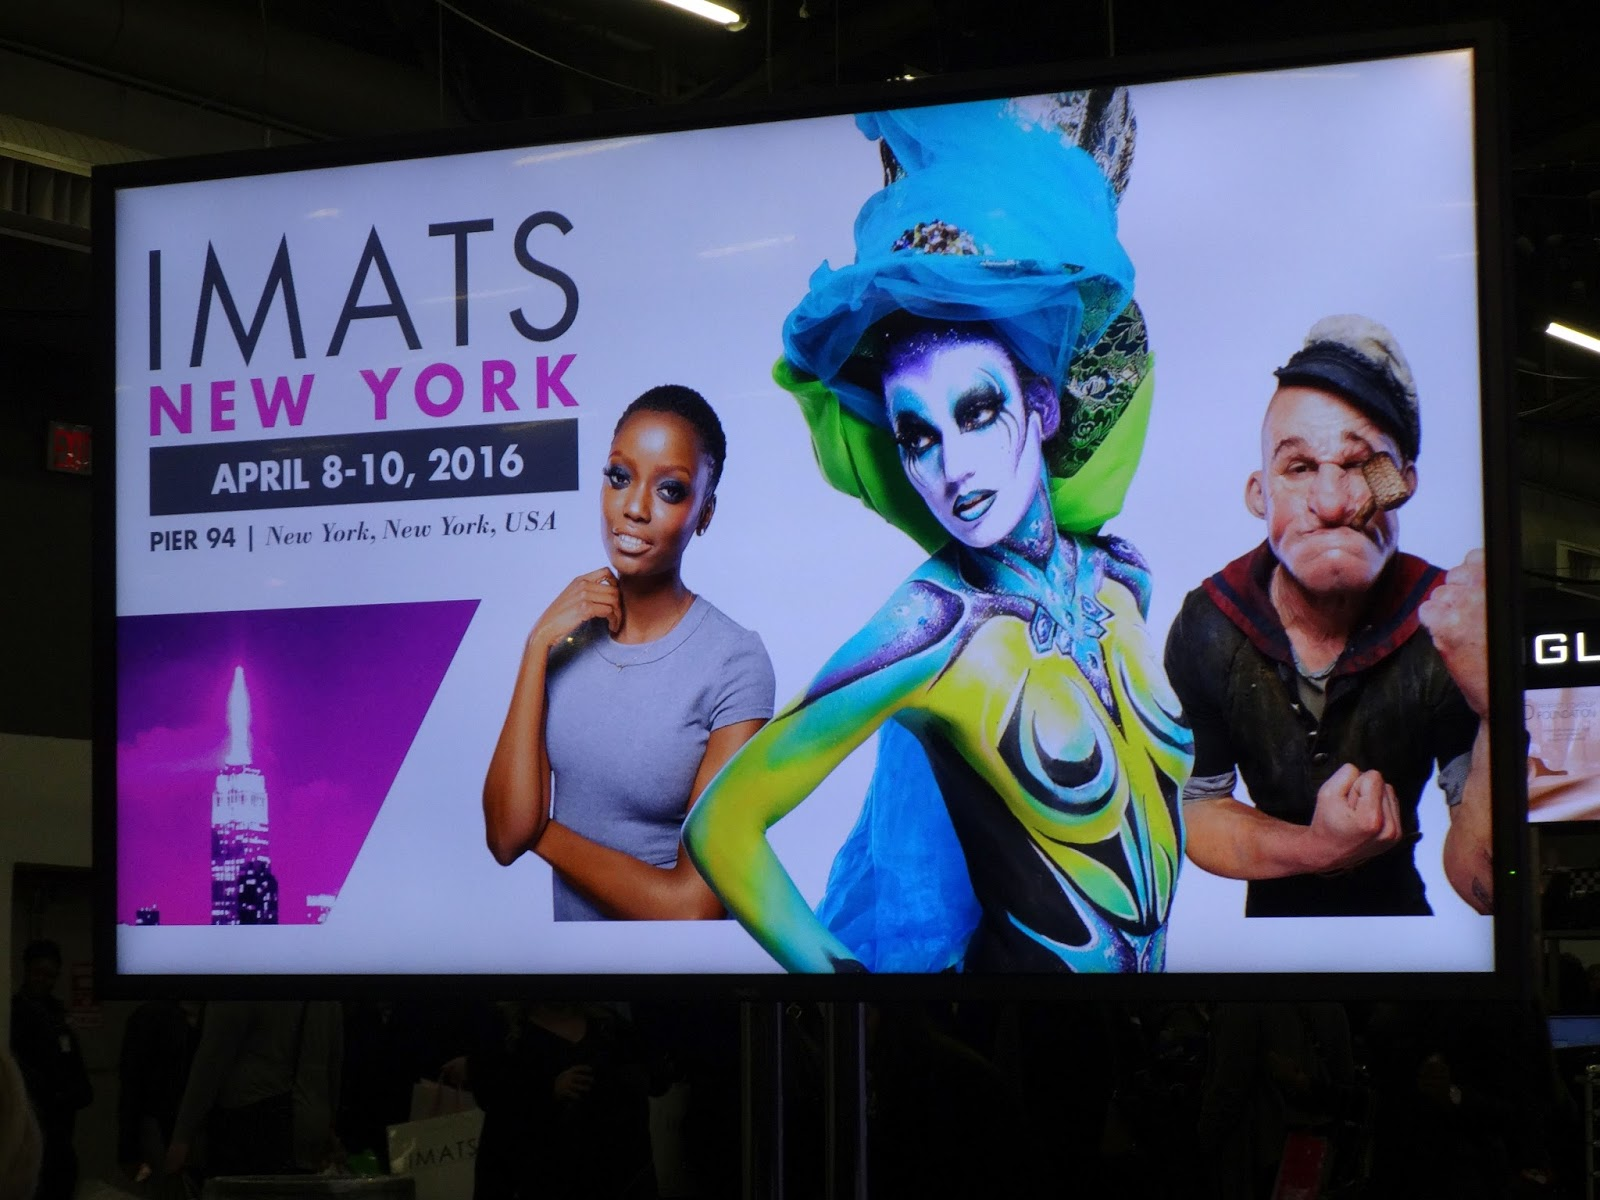 IMATS New York 2016 – Review, Prices, and Haul Video